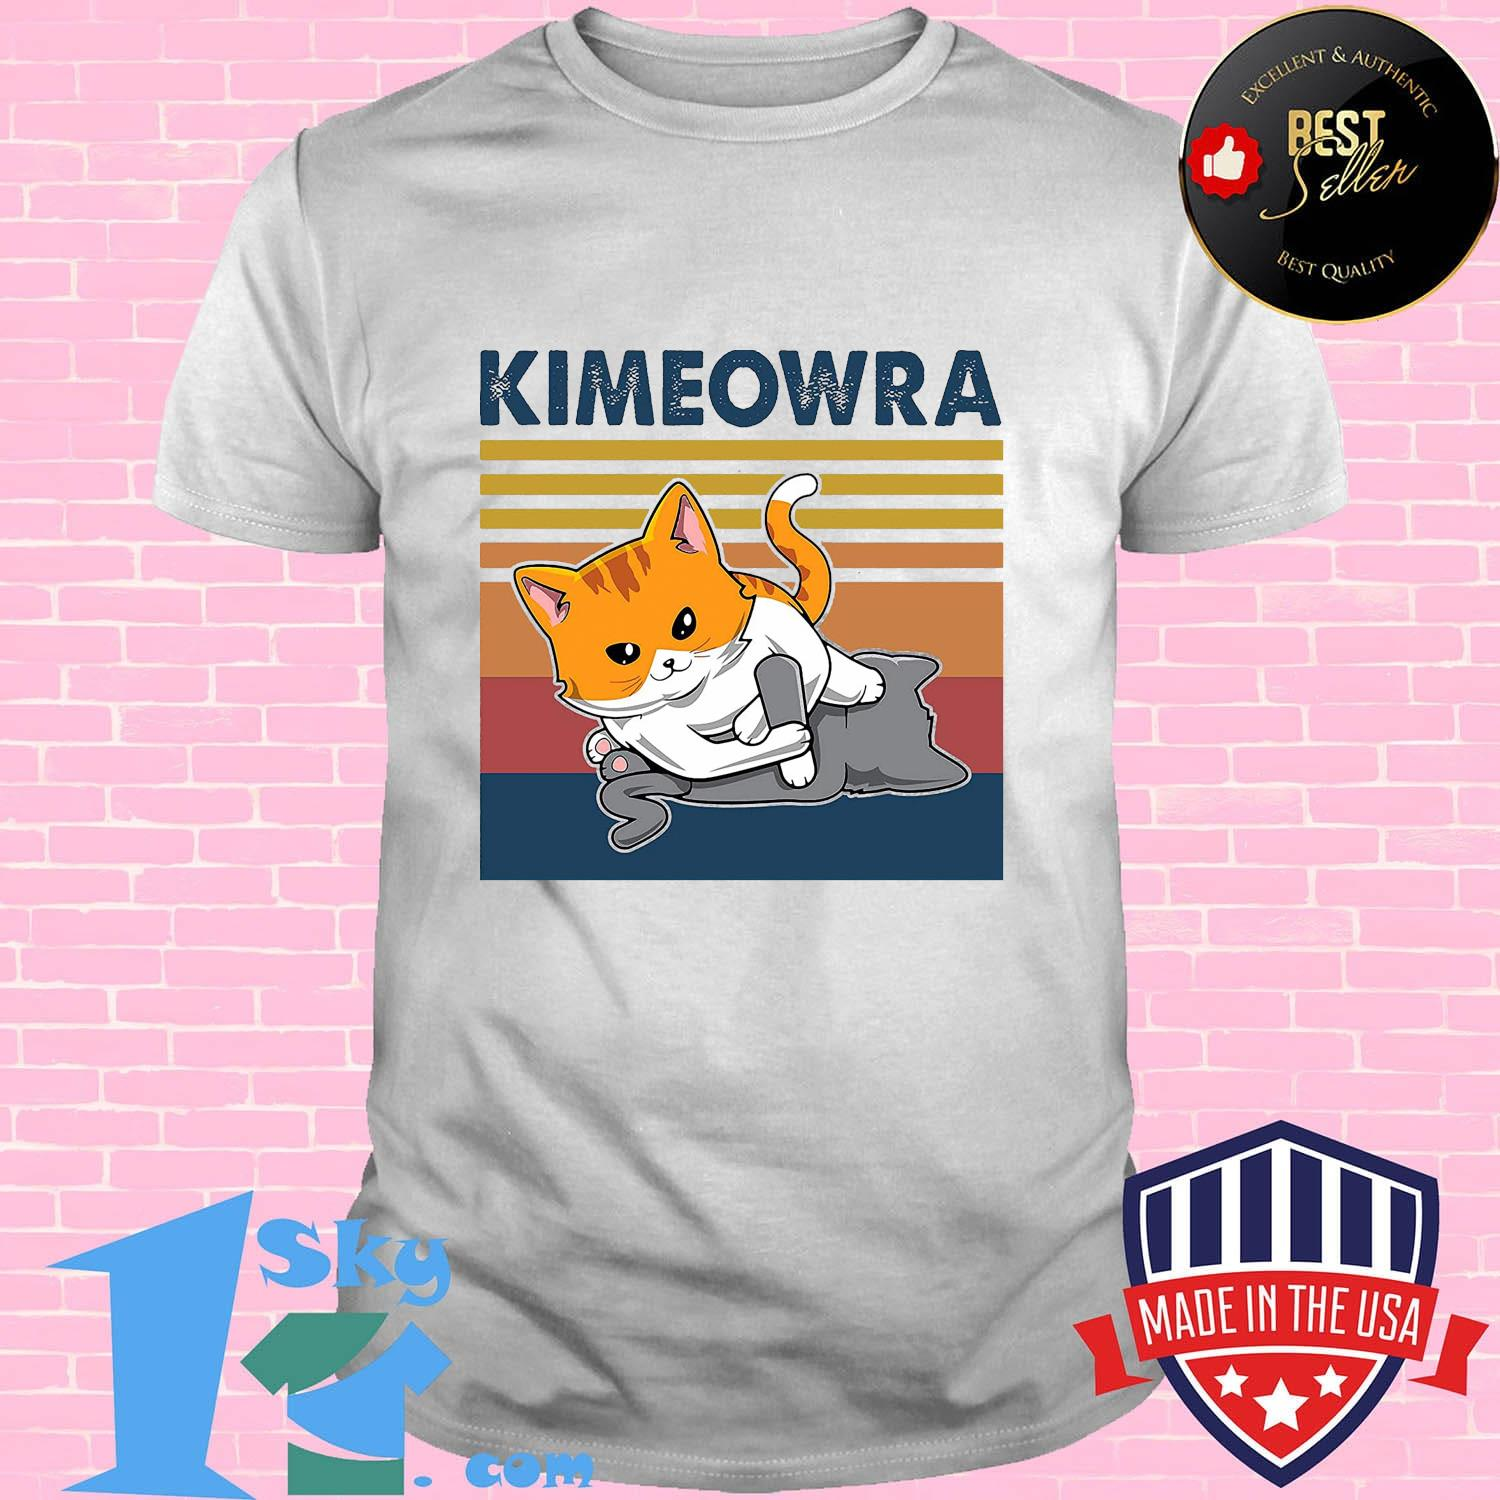 ff8228af cat kimeowra vintage retro shirt unisex - Shop trending - We offer all trend shirts - 1SkyTee